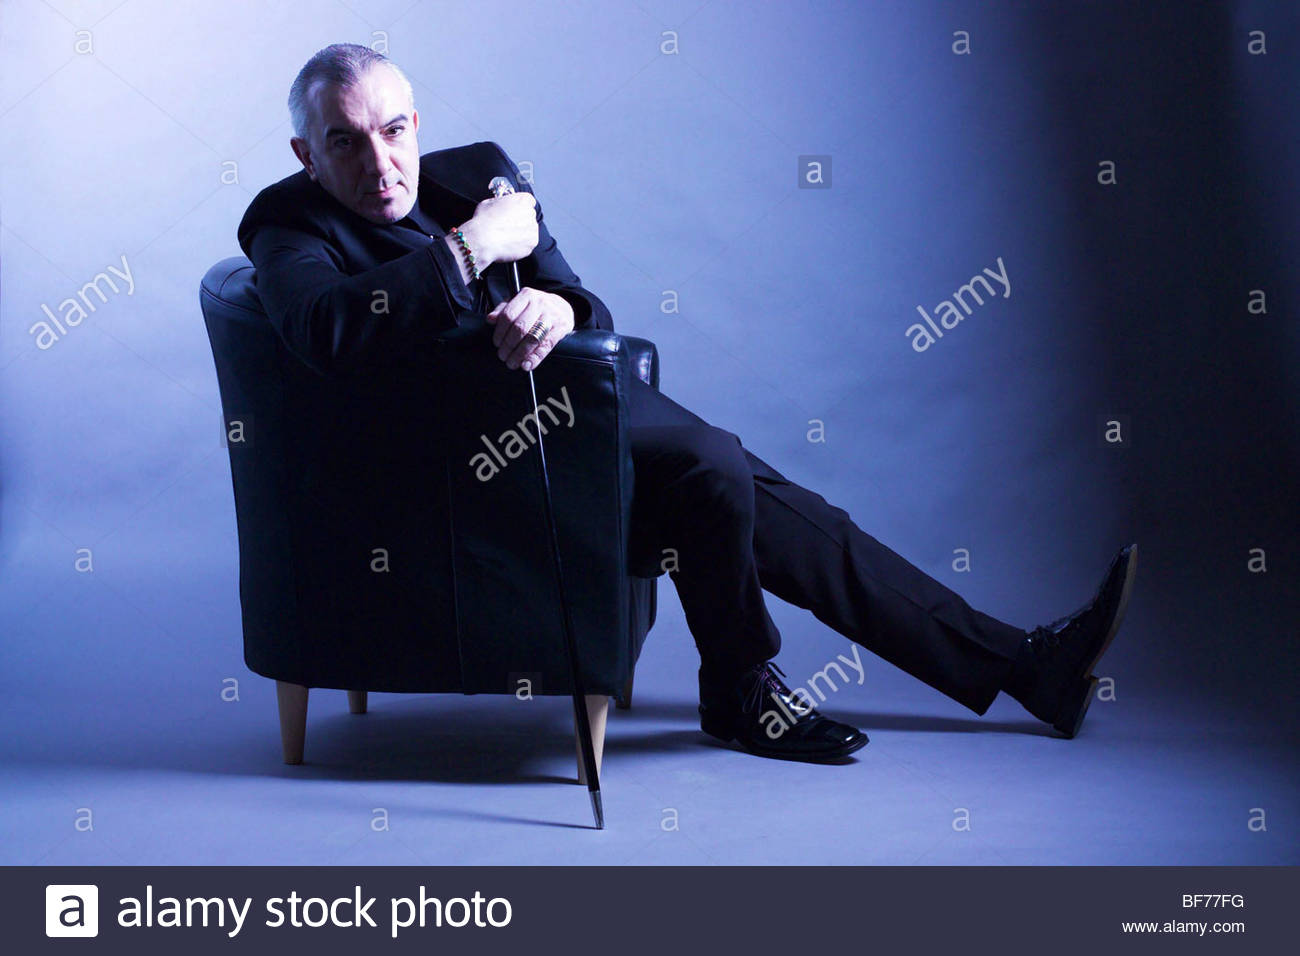 Sessel Modern Vampires Cane Armchair Stock Photos Cane Armchair Stock Images Page 3